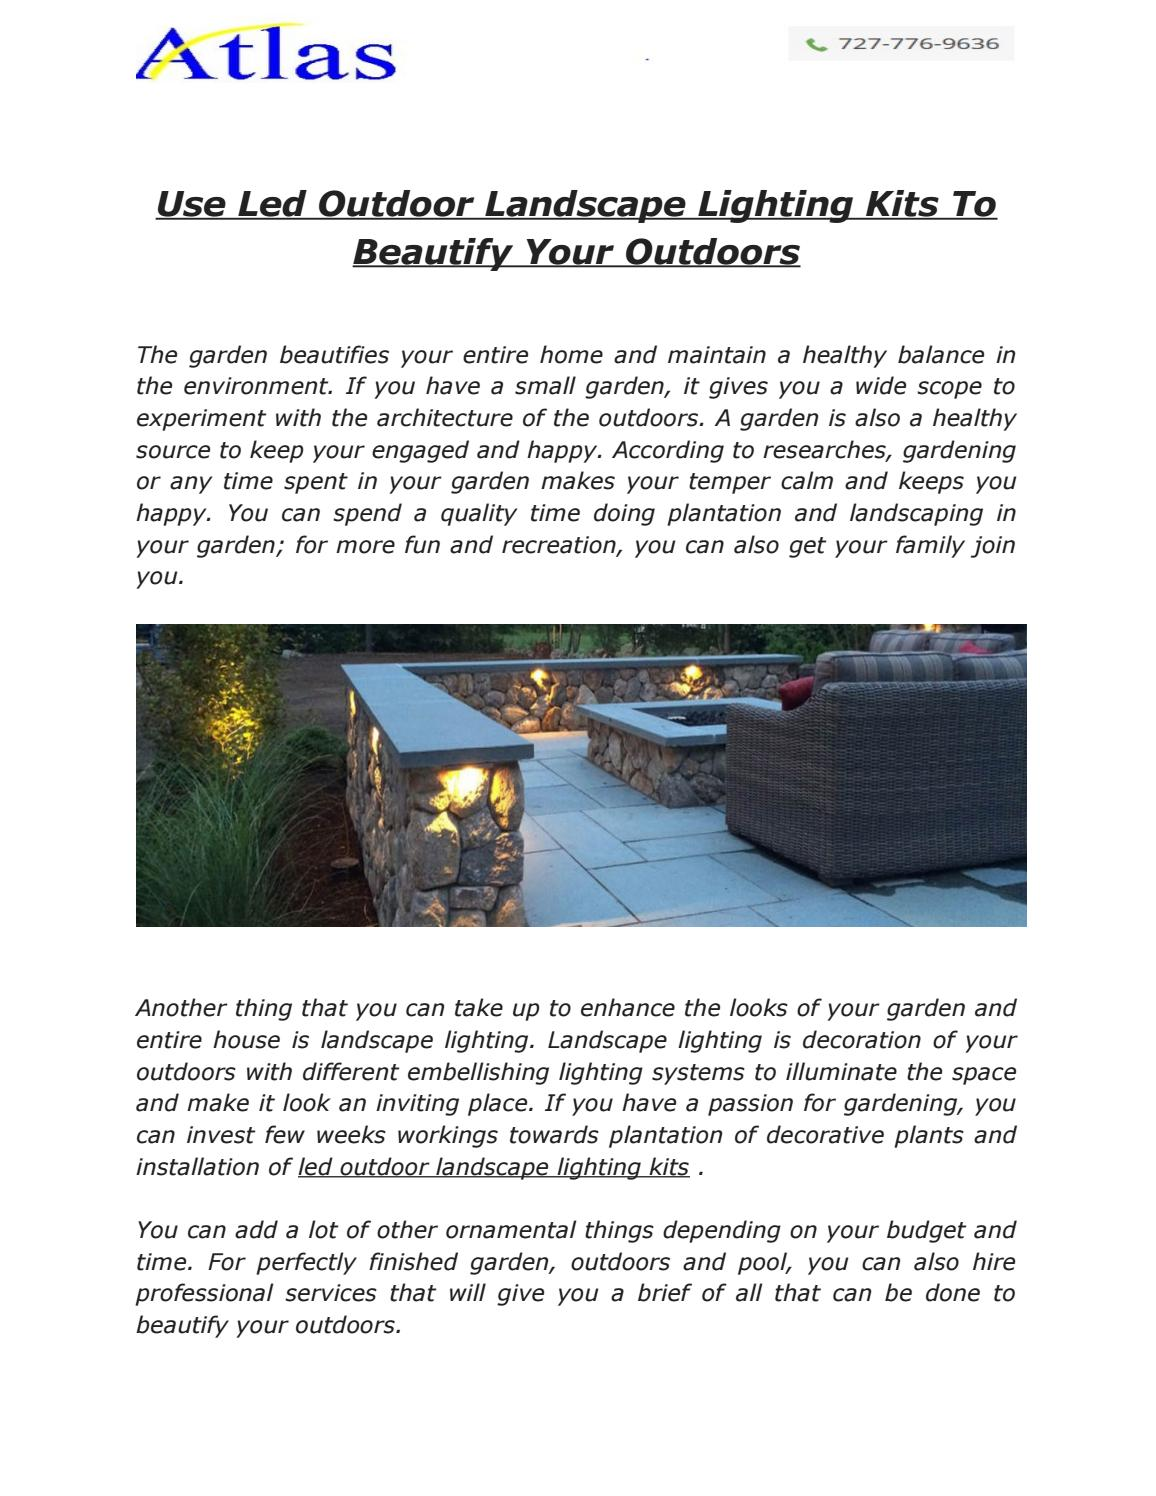 Use Led Outdoor Landscape Lighting Kits To Beautify Your